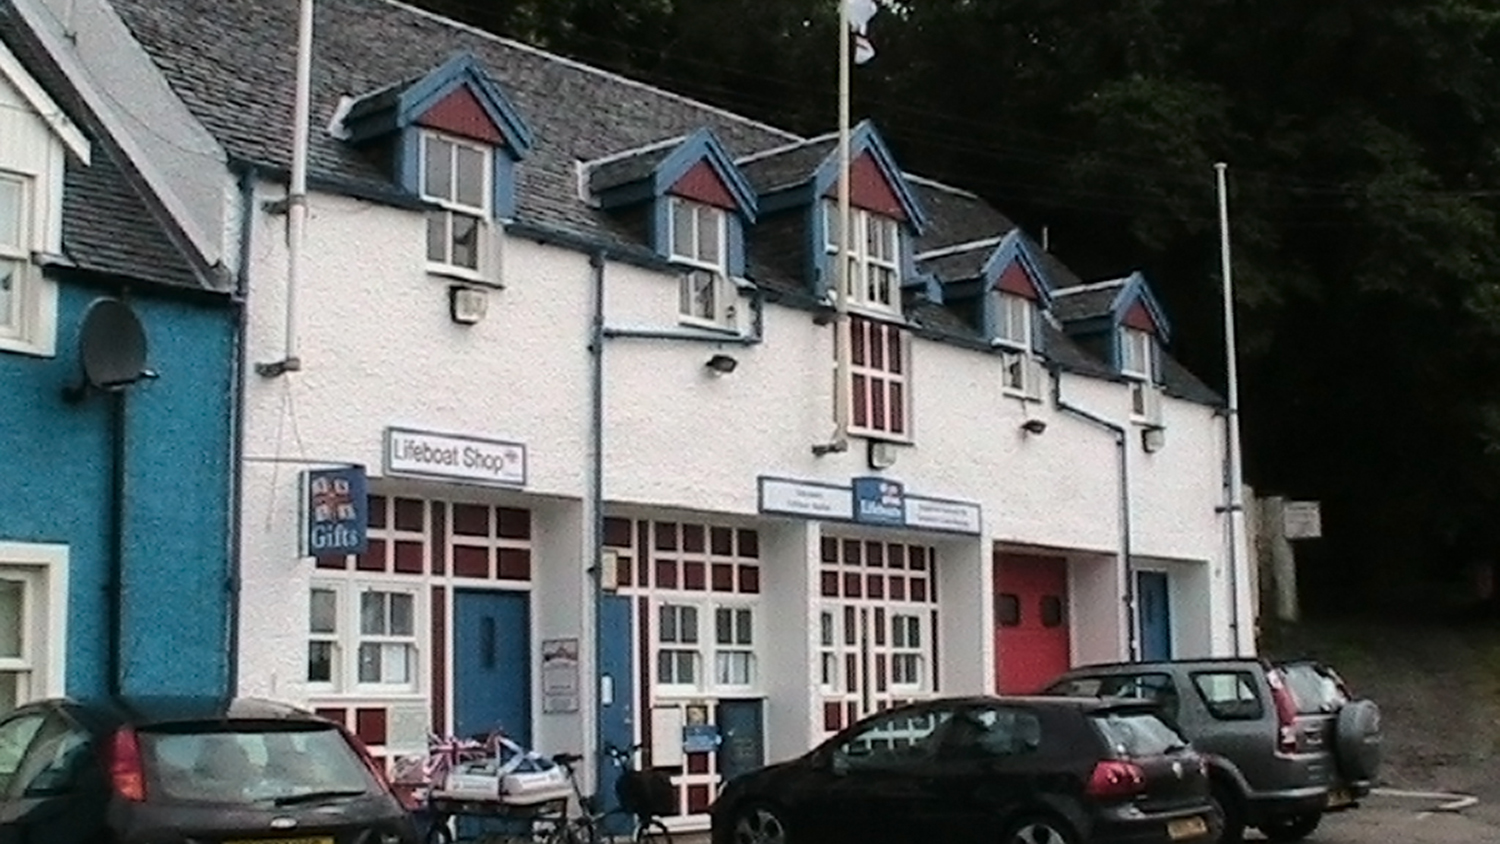 RNLI Tobermory Lifeboat Station